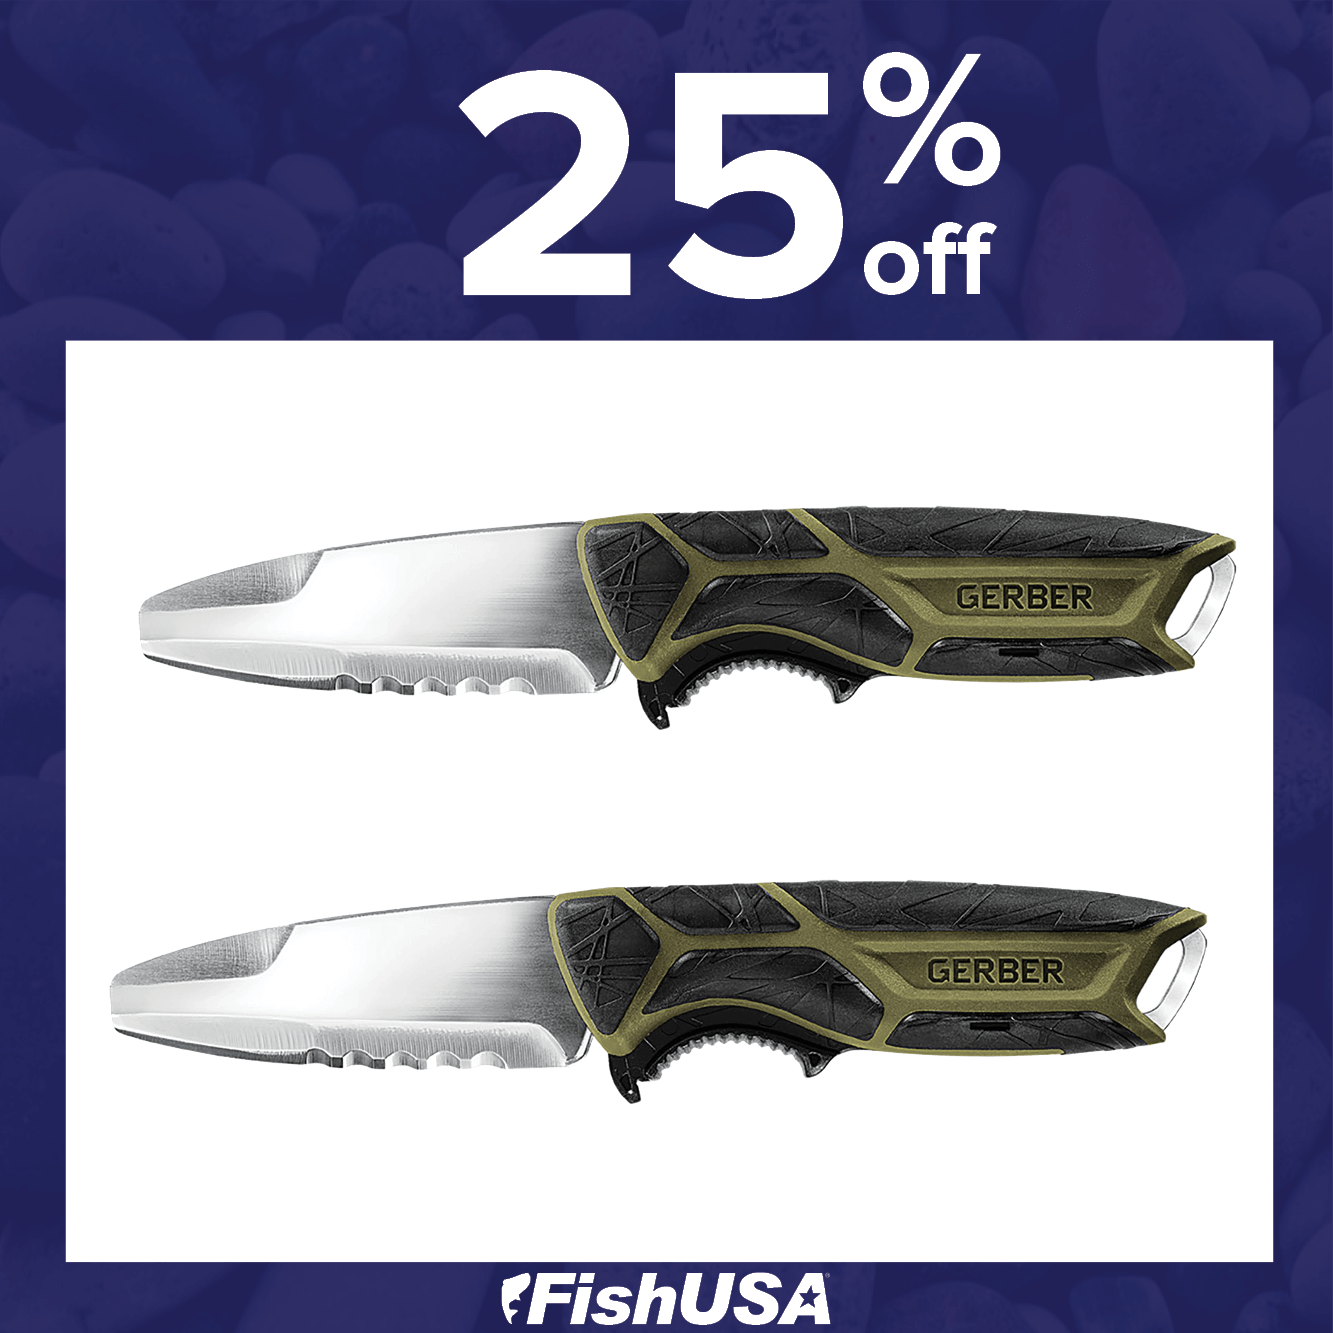 25% off the Gerber Crossriver Fixed Blade Knife